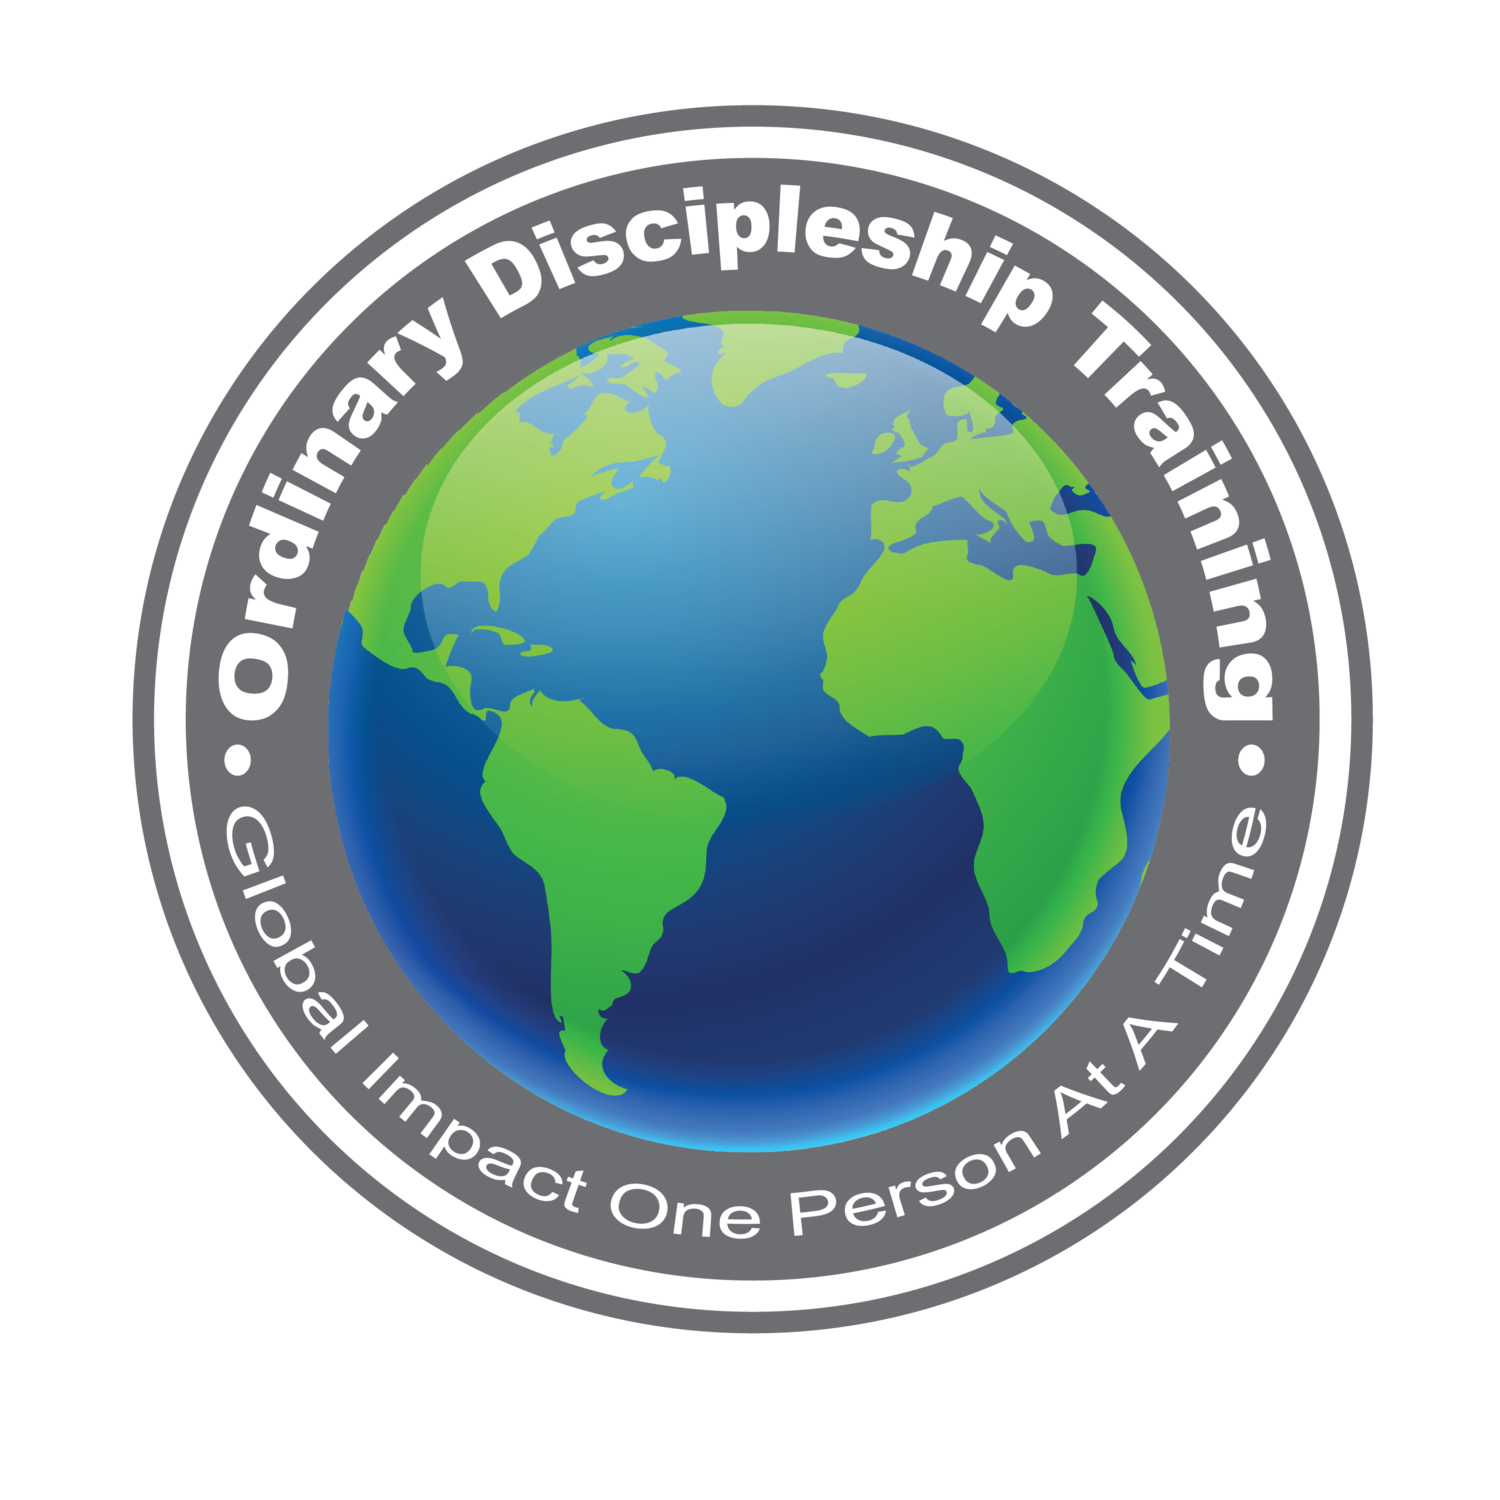 Ordinary Discipleship Training